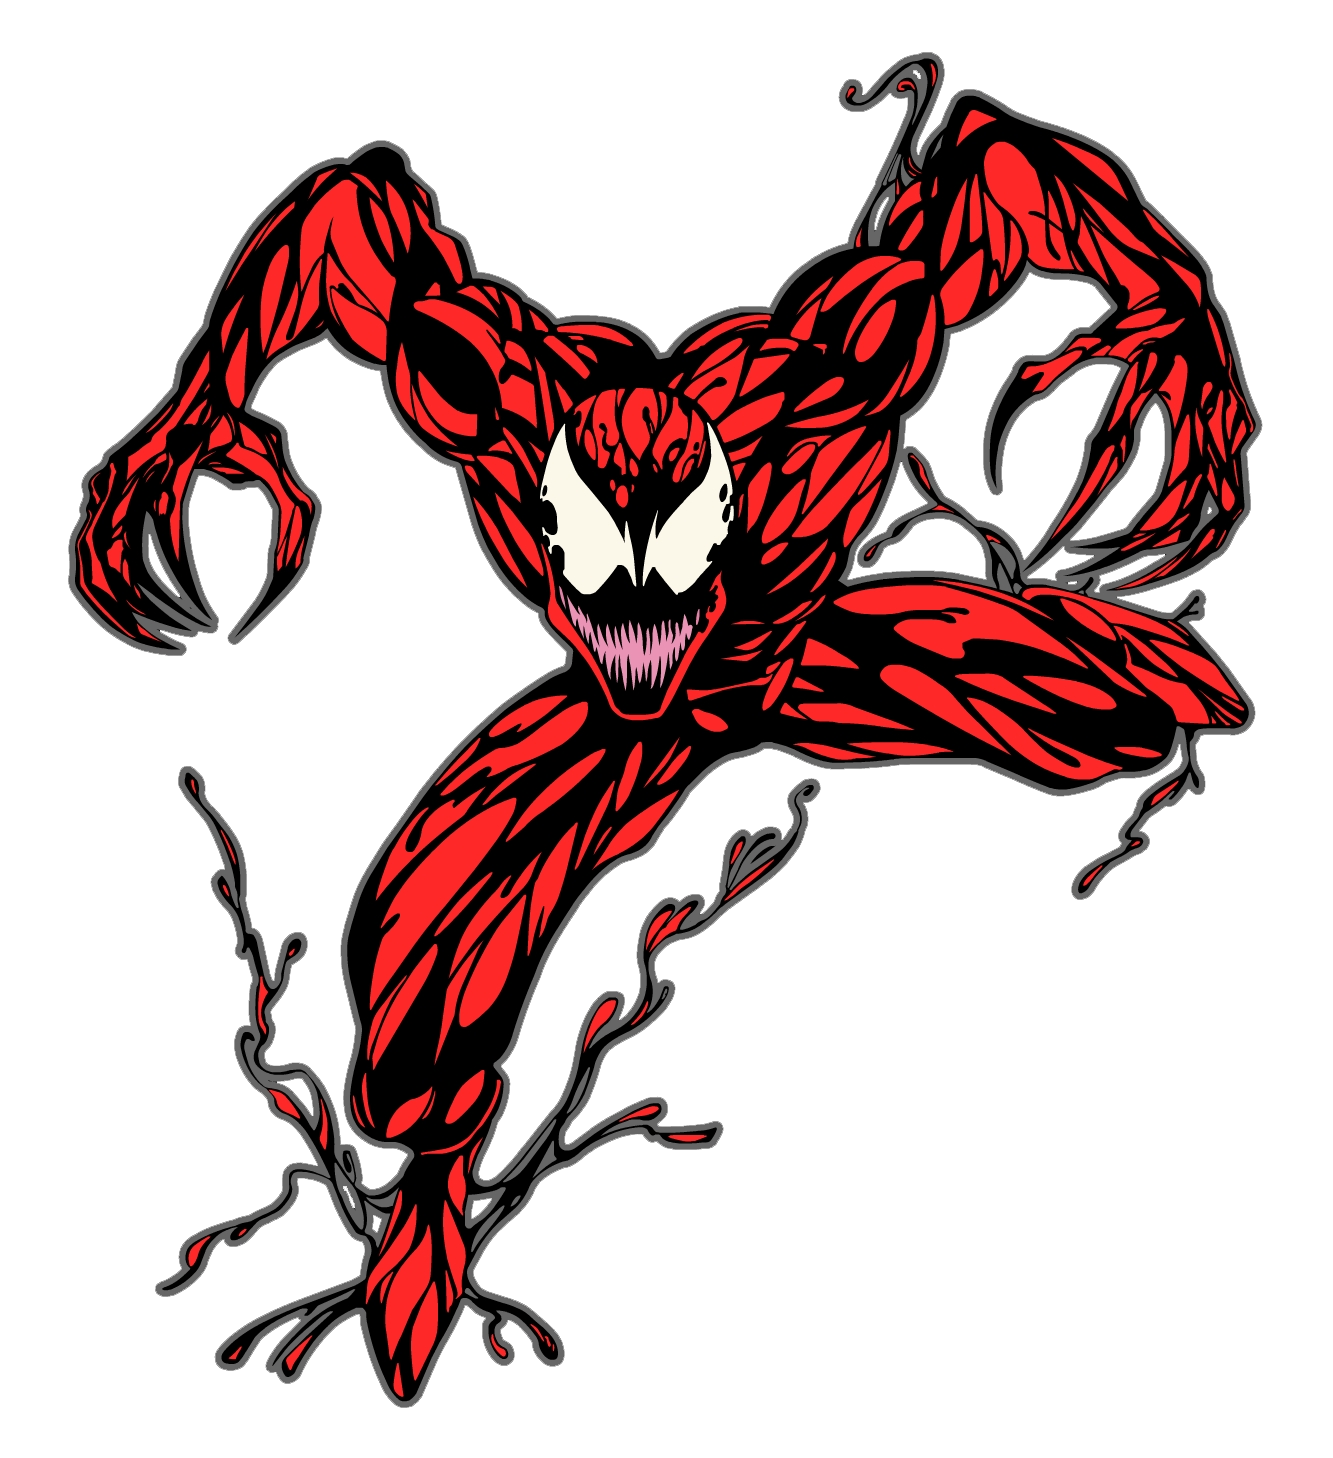 carnage jaden s adventures wiki fandom powered by wikia Classic Spider-Man Logo Classic Spider-Man Logo